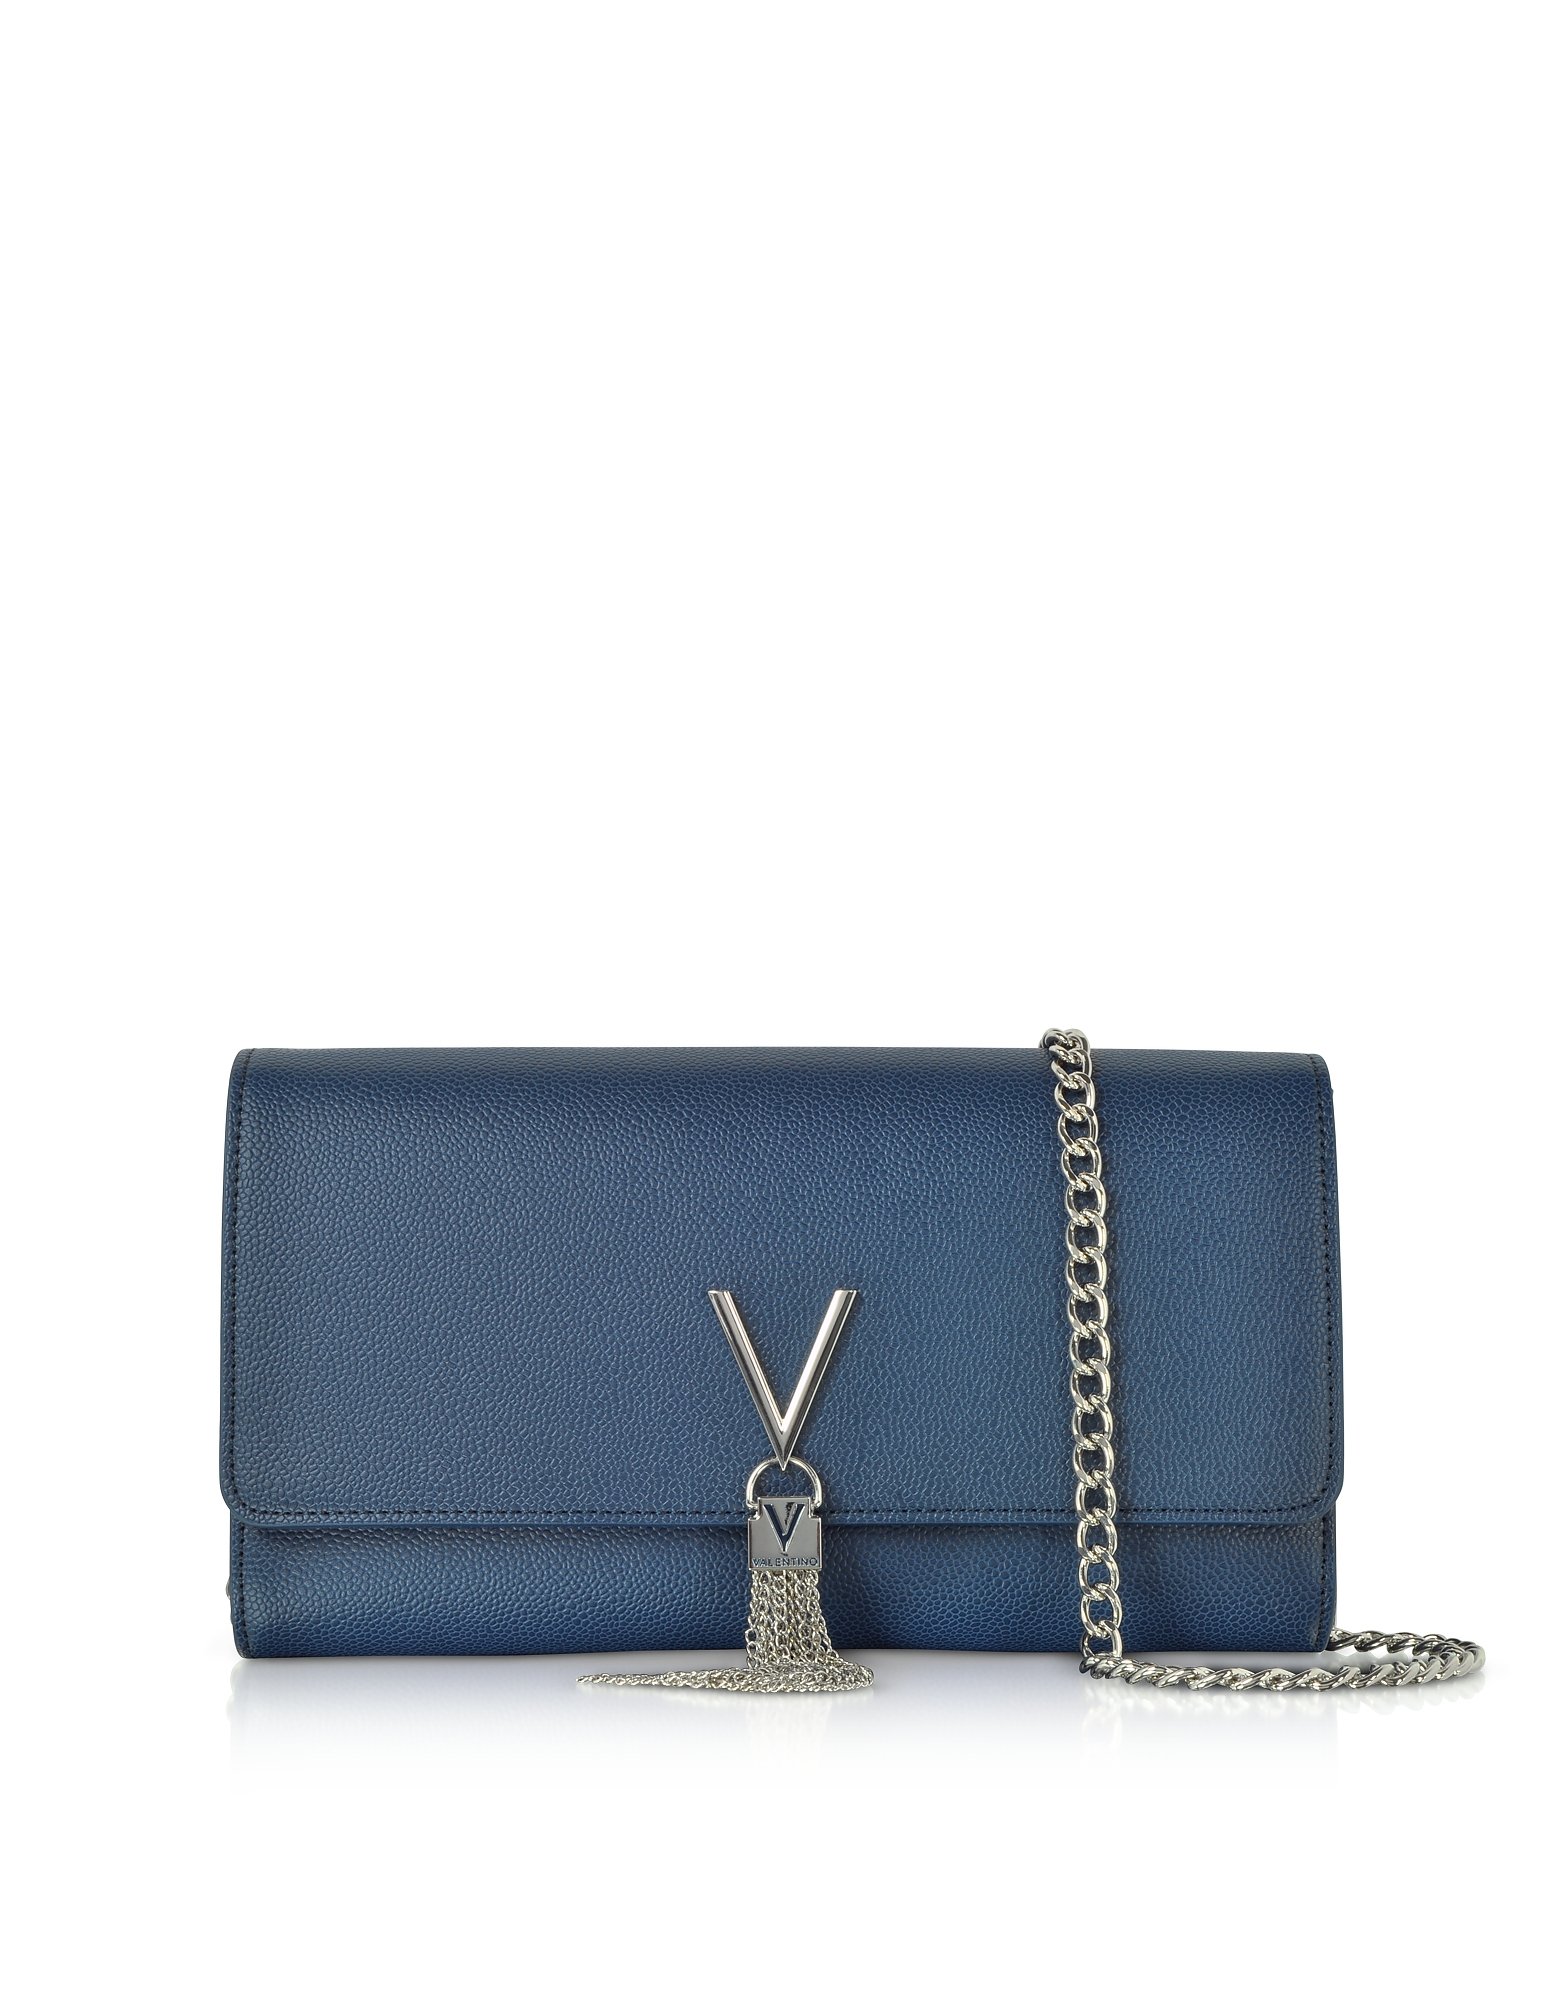 VALENTINO BY MARIO VALENTINO Blue Lizard Embossed Eco Leather Divina Shoulder Bag